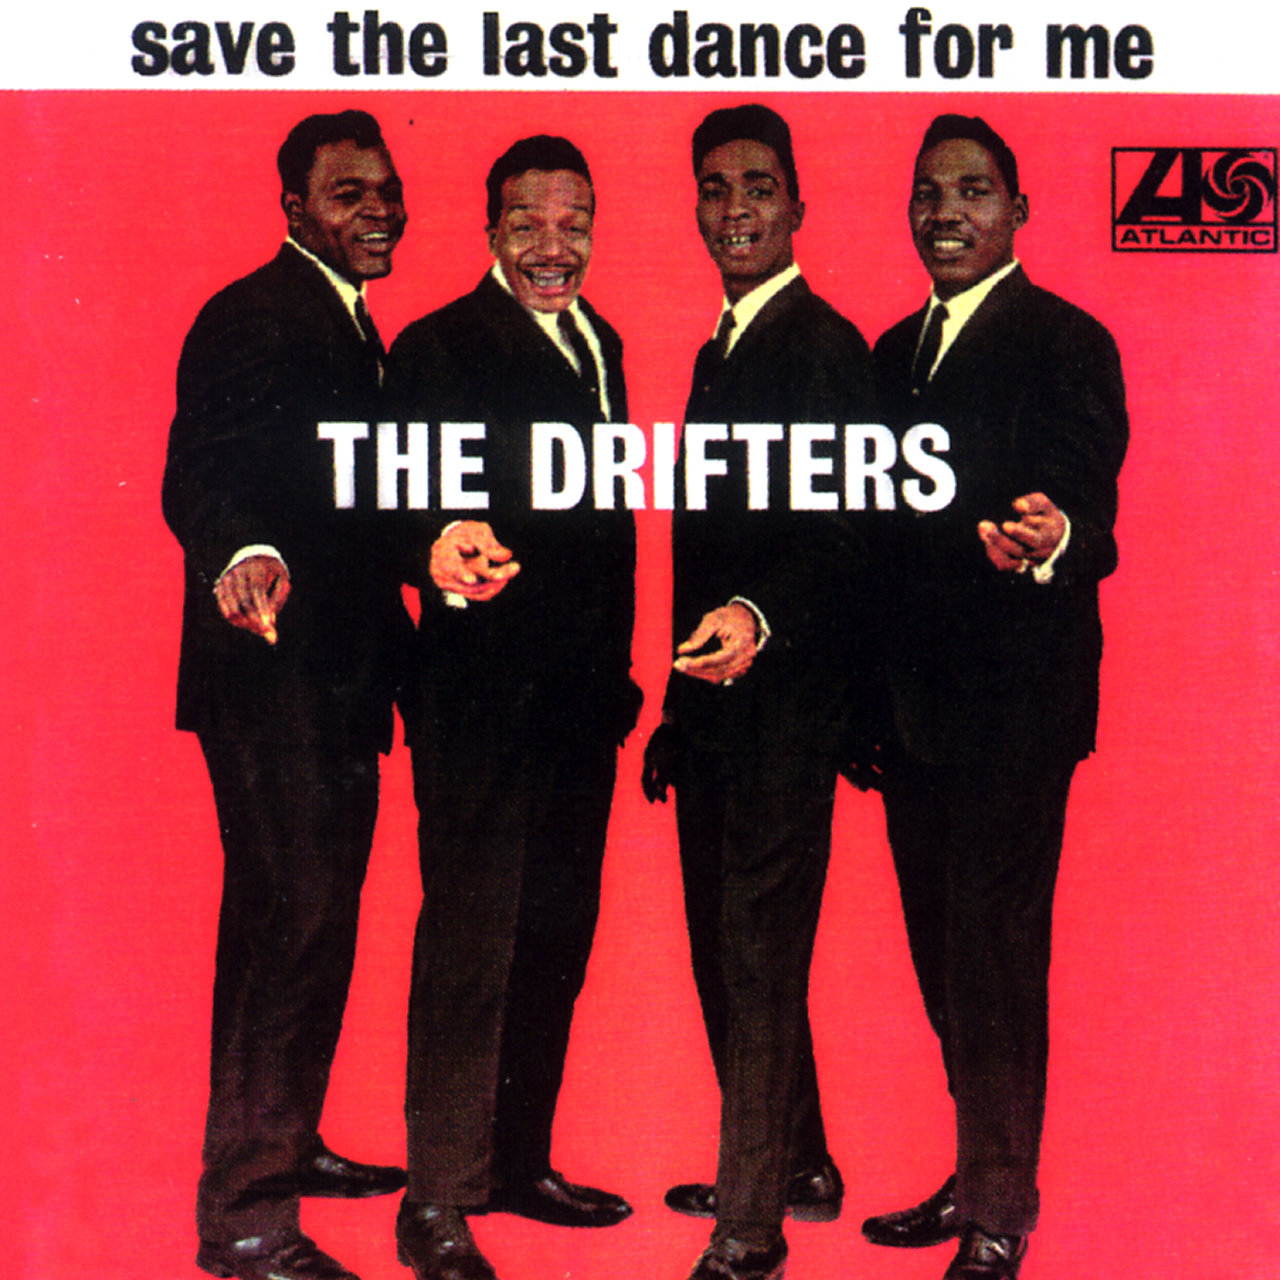 drifters-save-the-last-dance-for-me